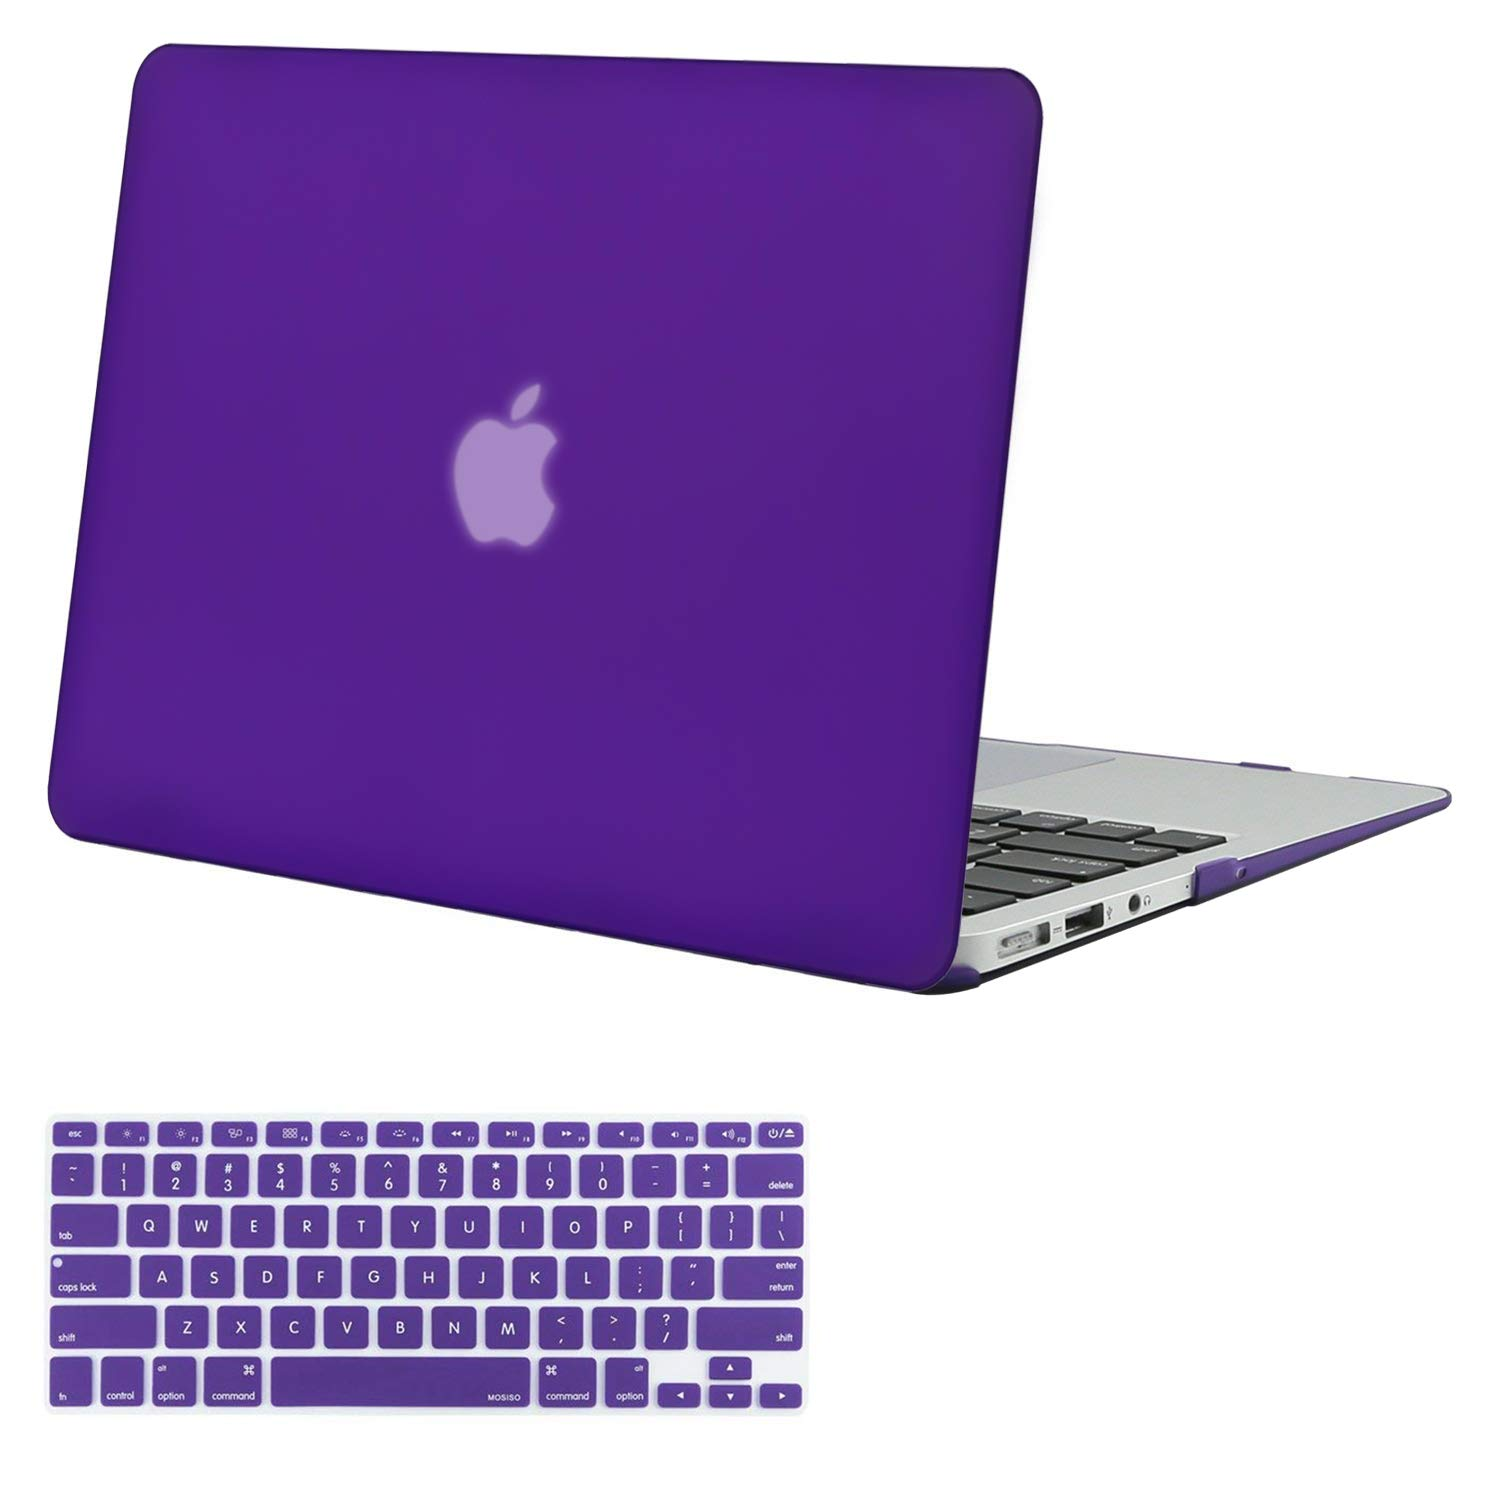 MOSISO Plastic Hard Shell Case & Keyboard Cover Compatible MacBook Air 11 Inch (Models: A1370 & A1465), Ultra Violet